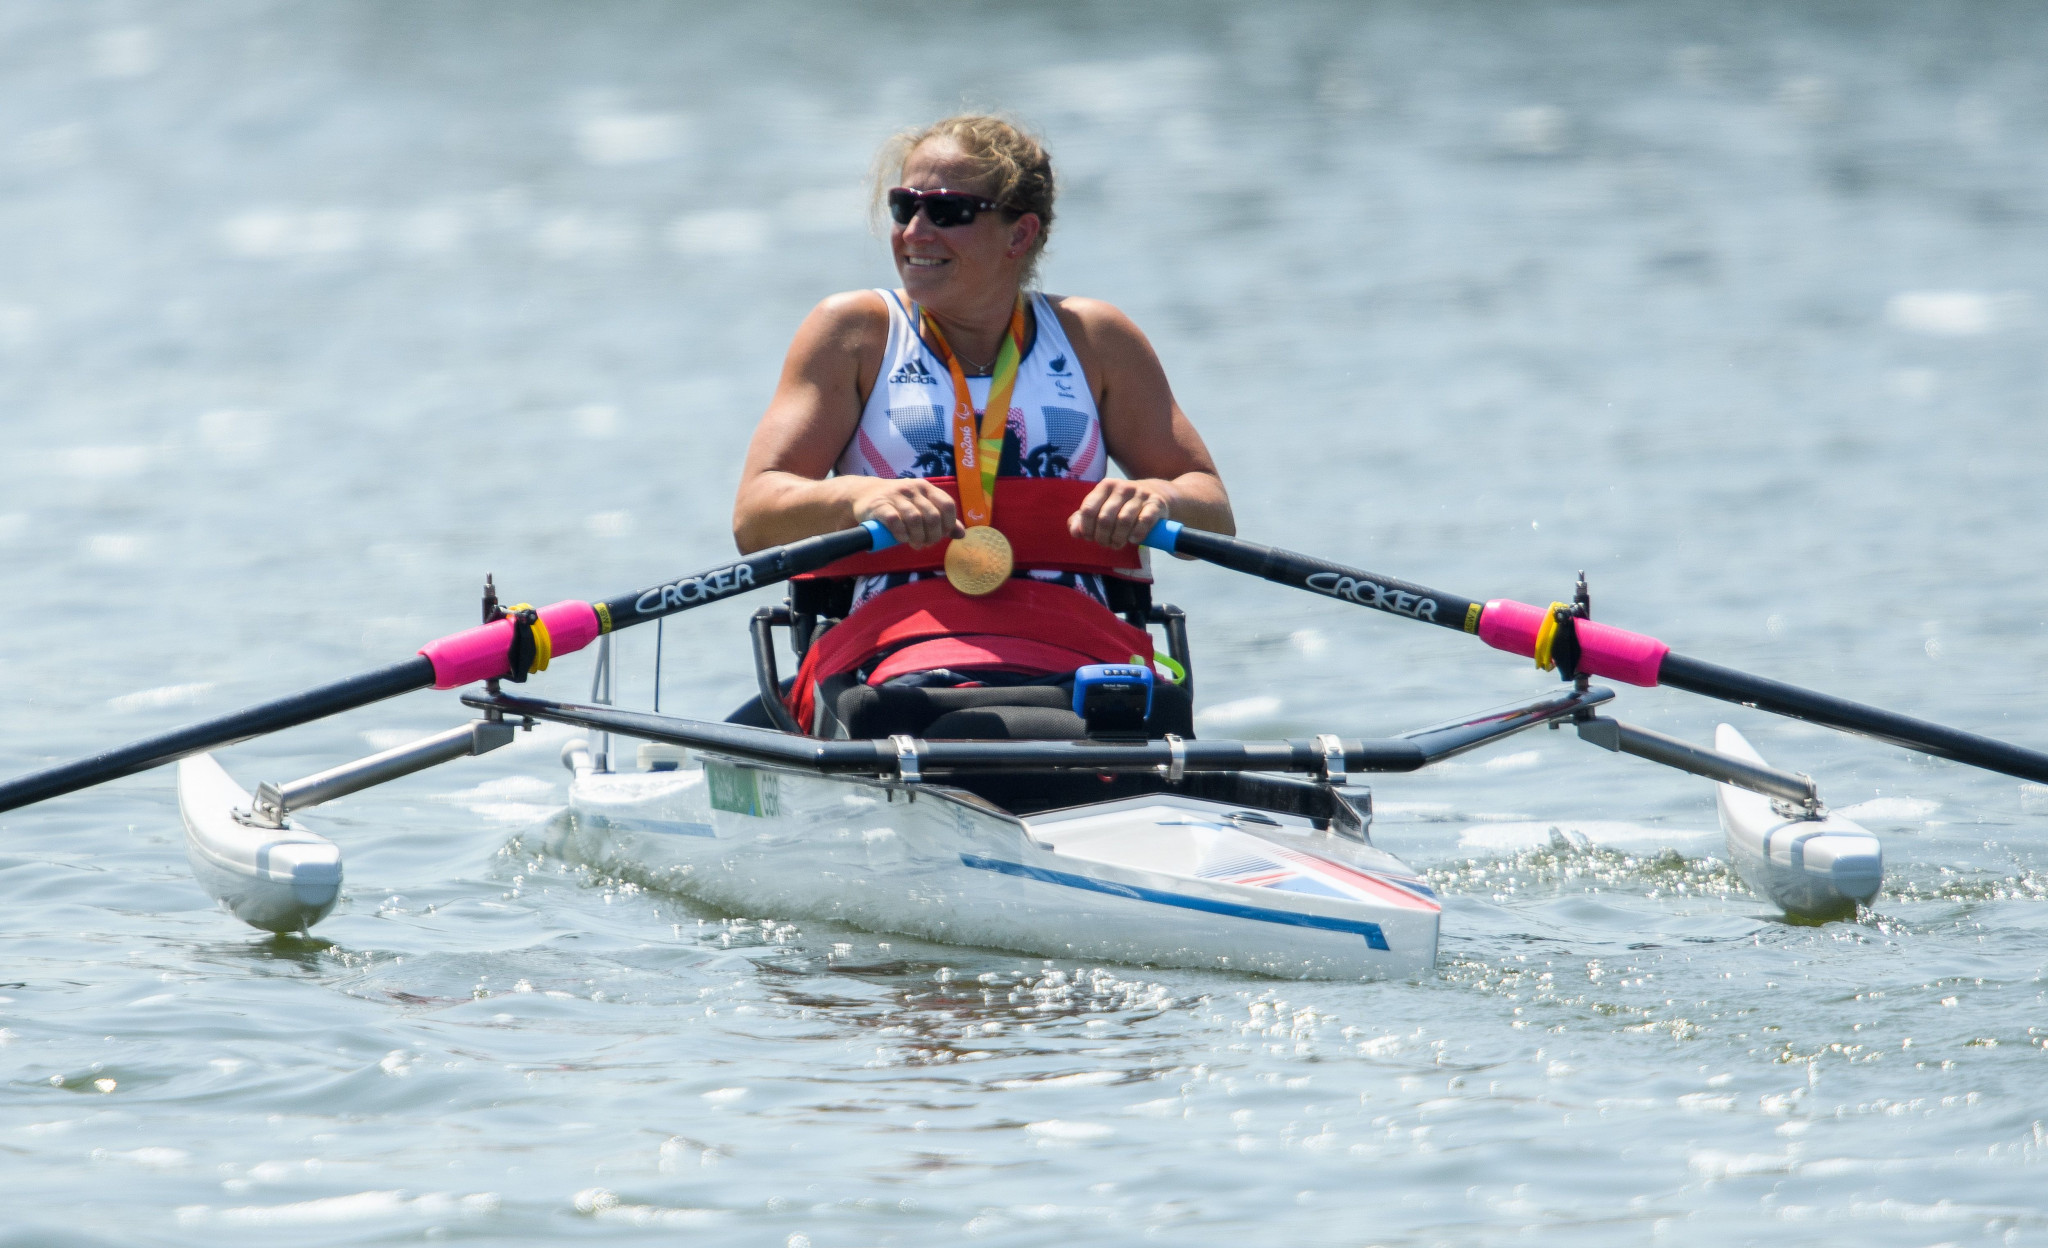 Rachel Morris, who is now 39, won a Paralympic Games gold medal in rowing at Rio 2016 ©Getty Images